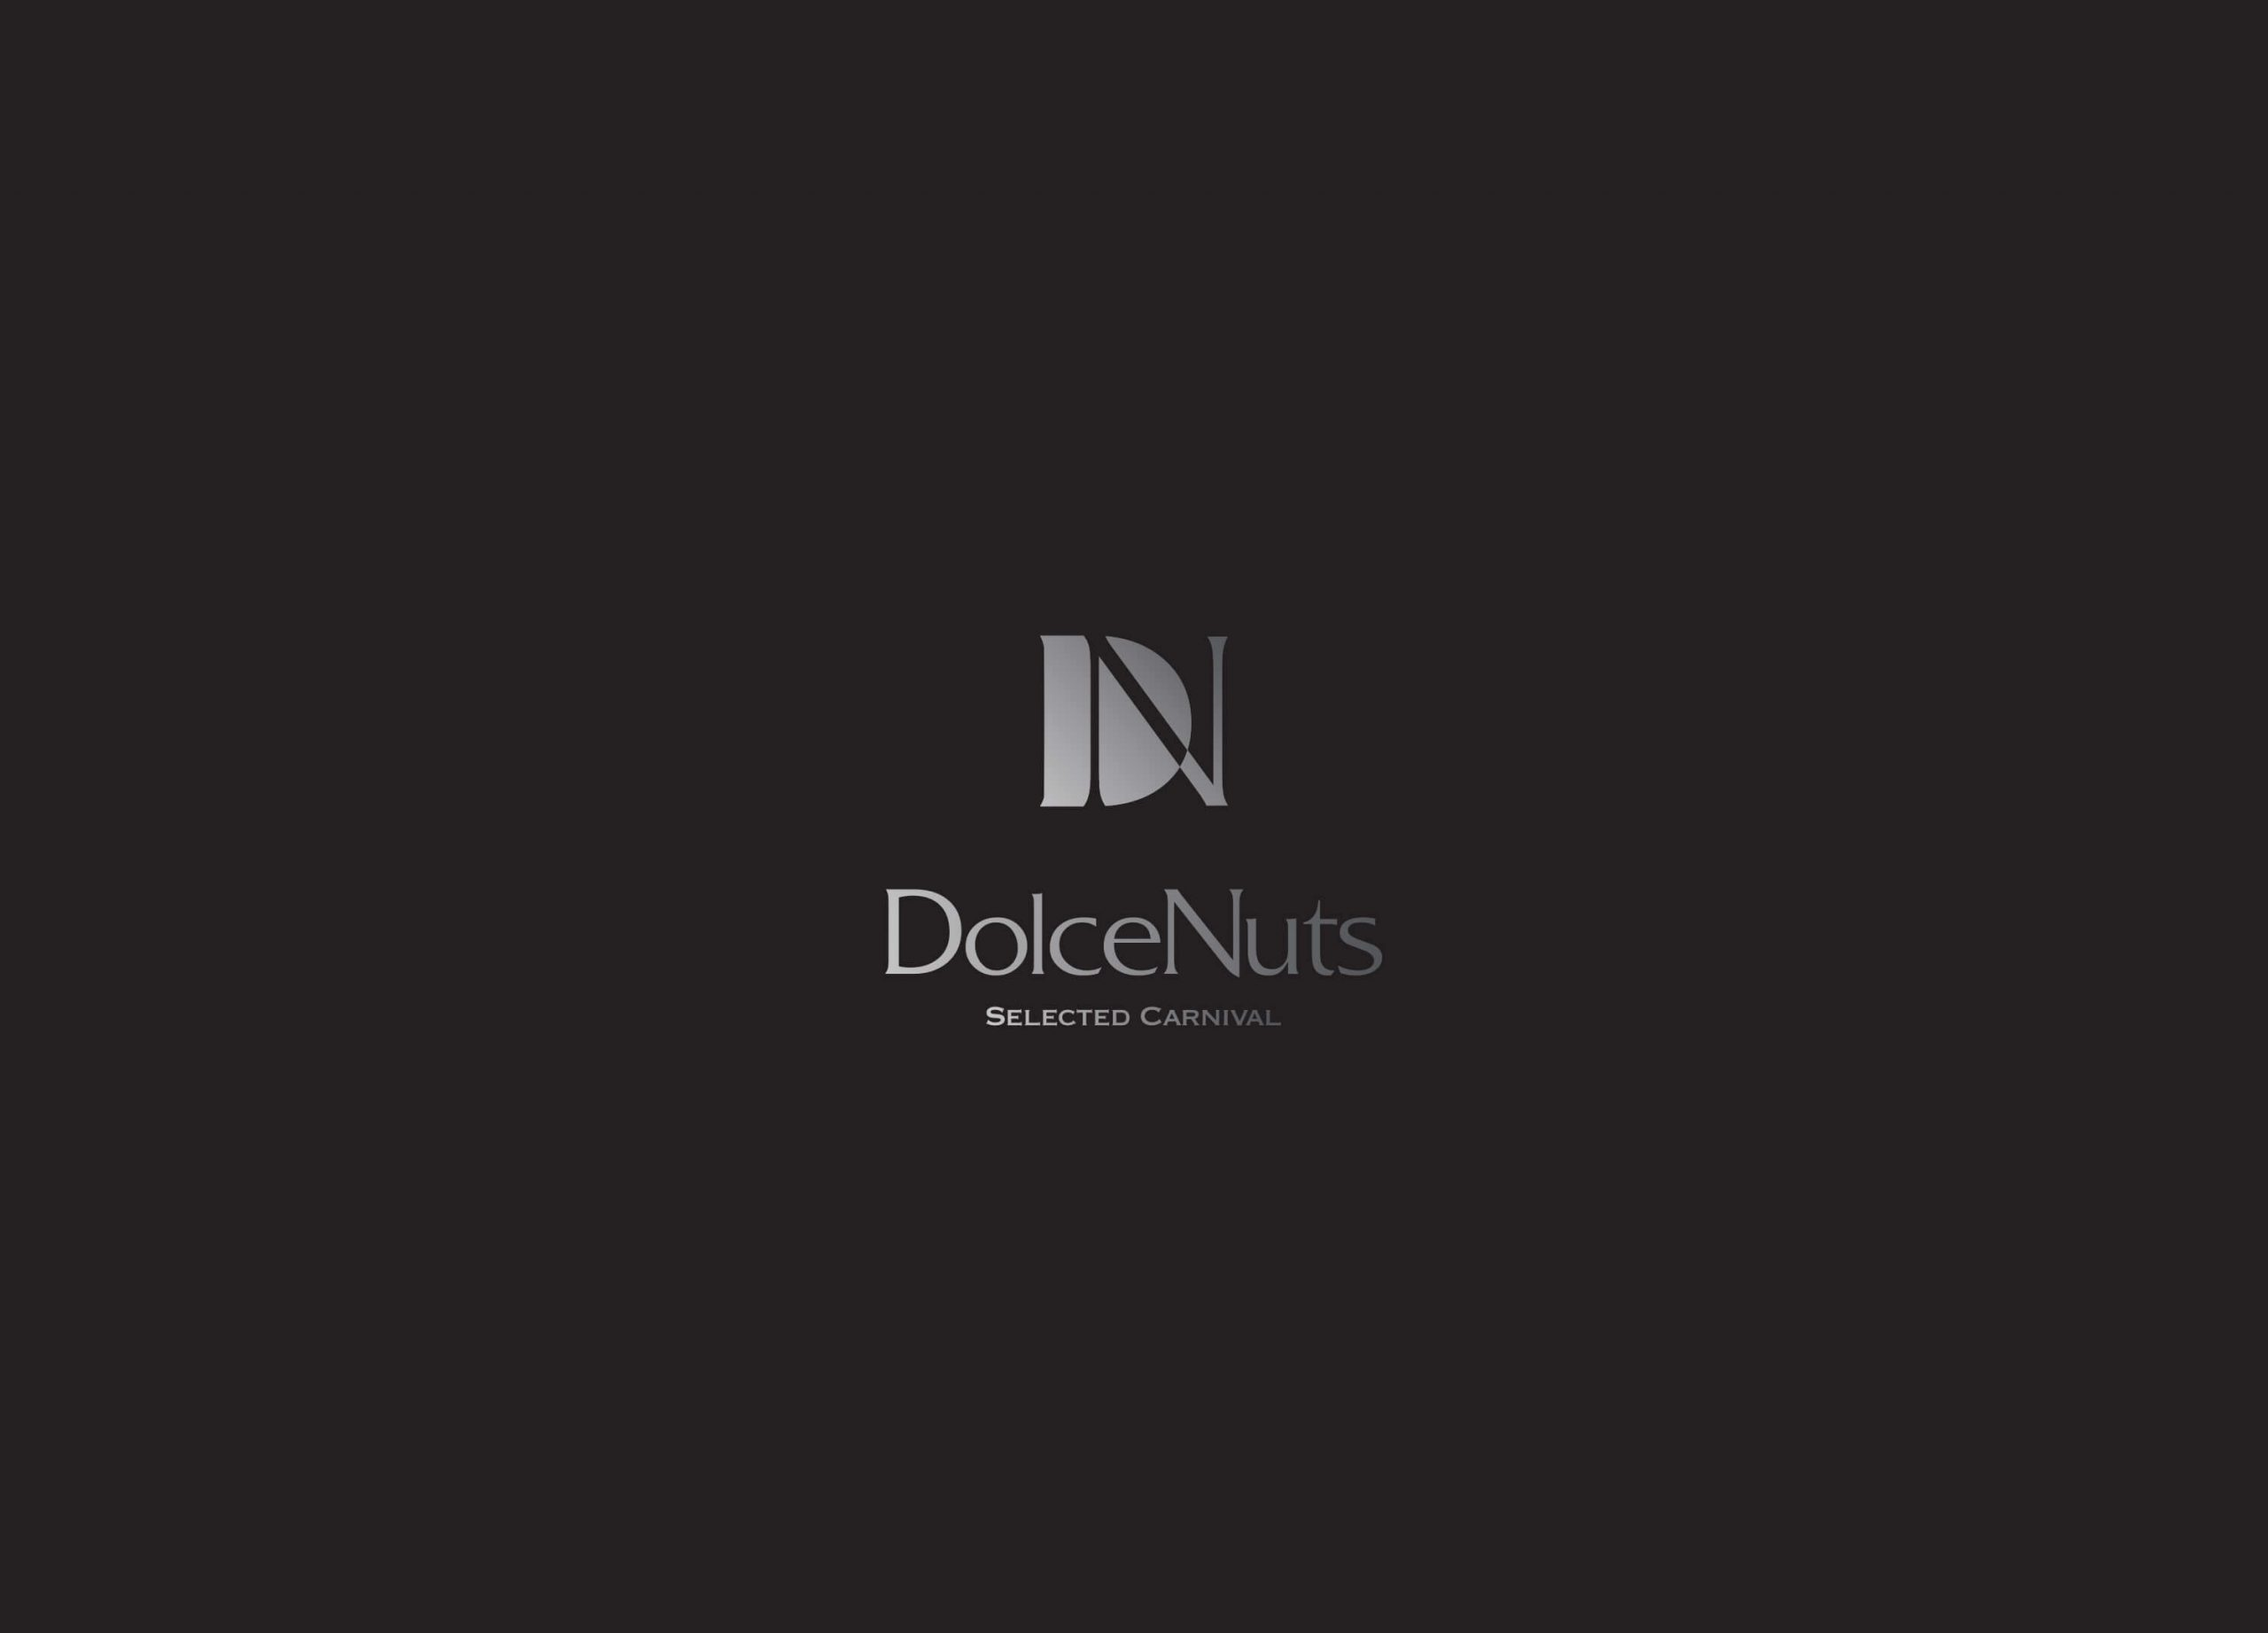 dolce nuts